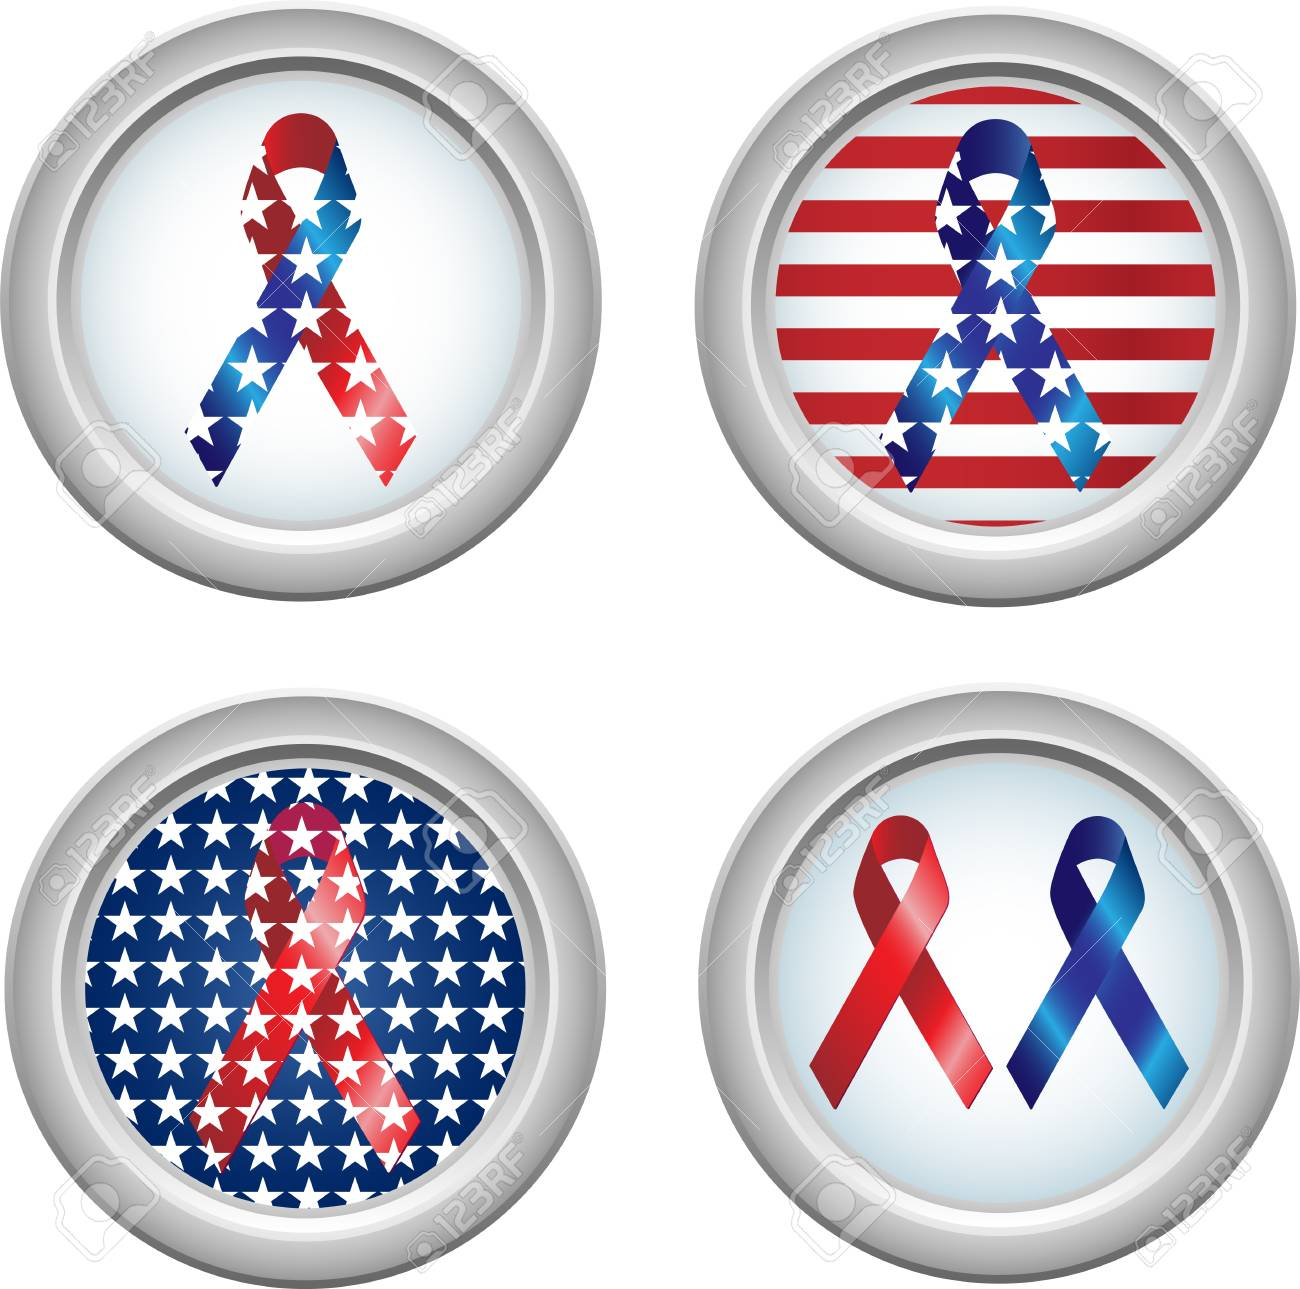 USA Stars and Stripes Buttons Fourth of July Stock Vector - 4995188